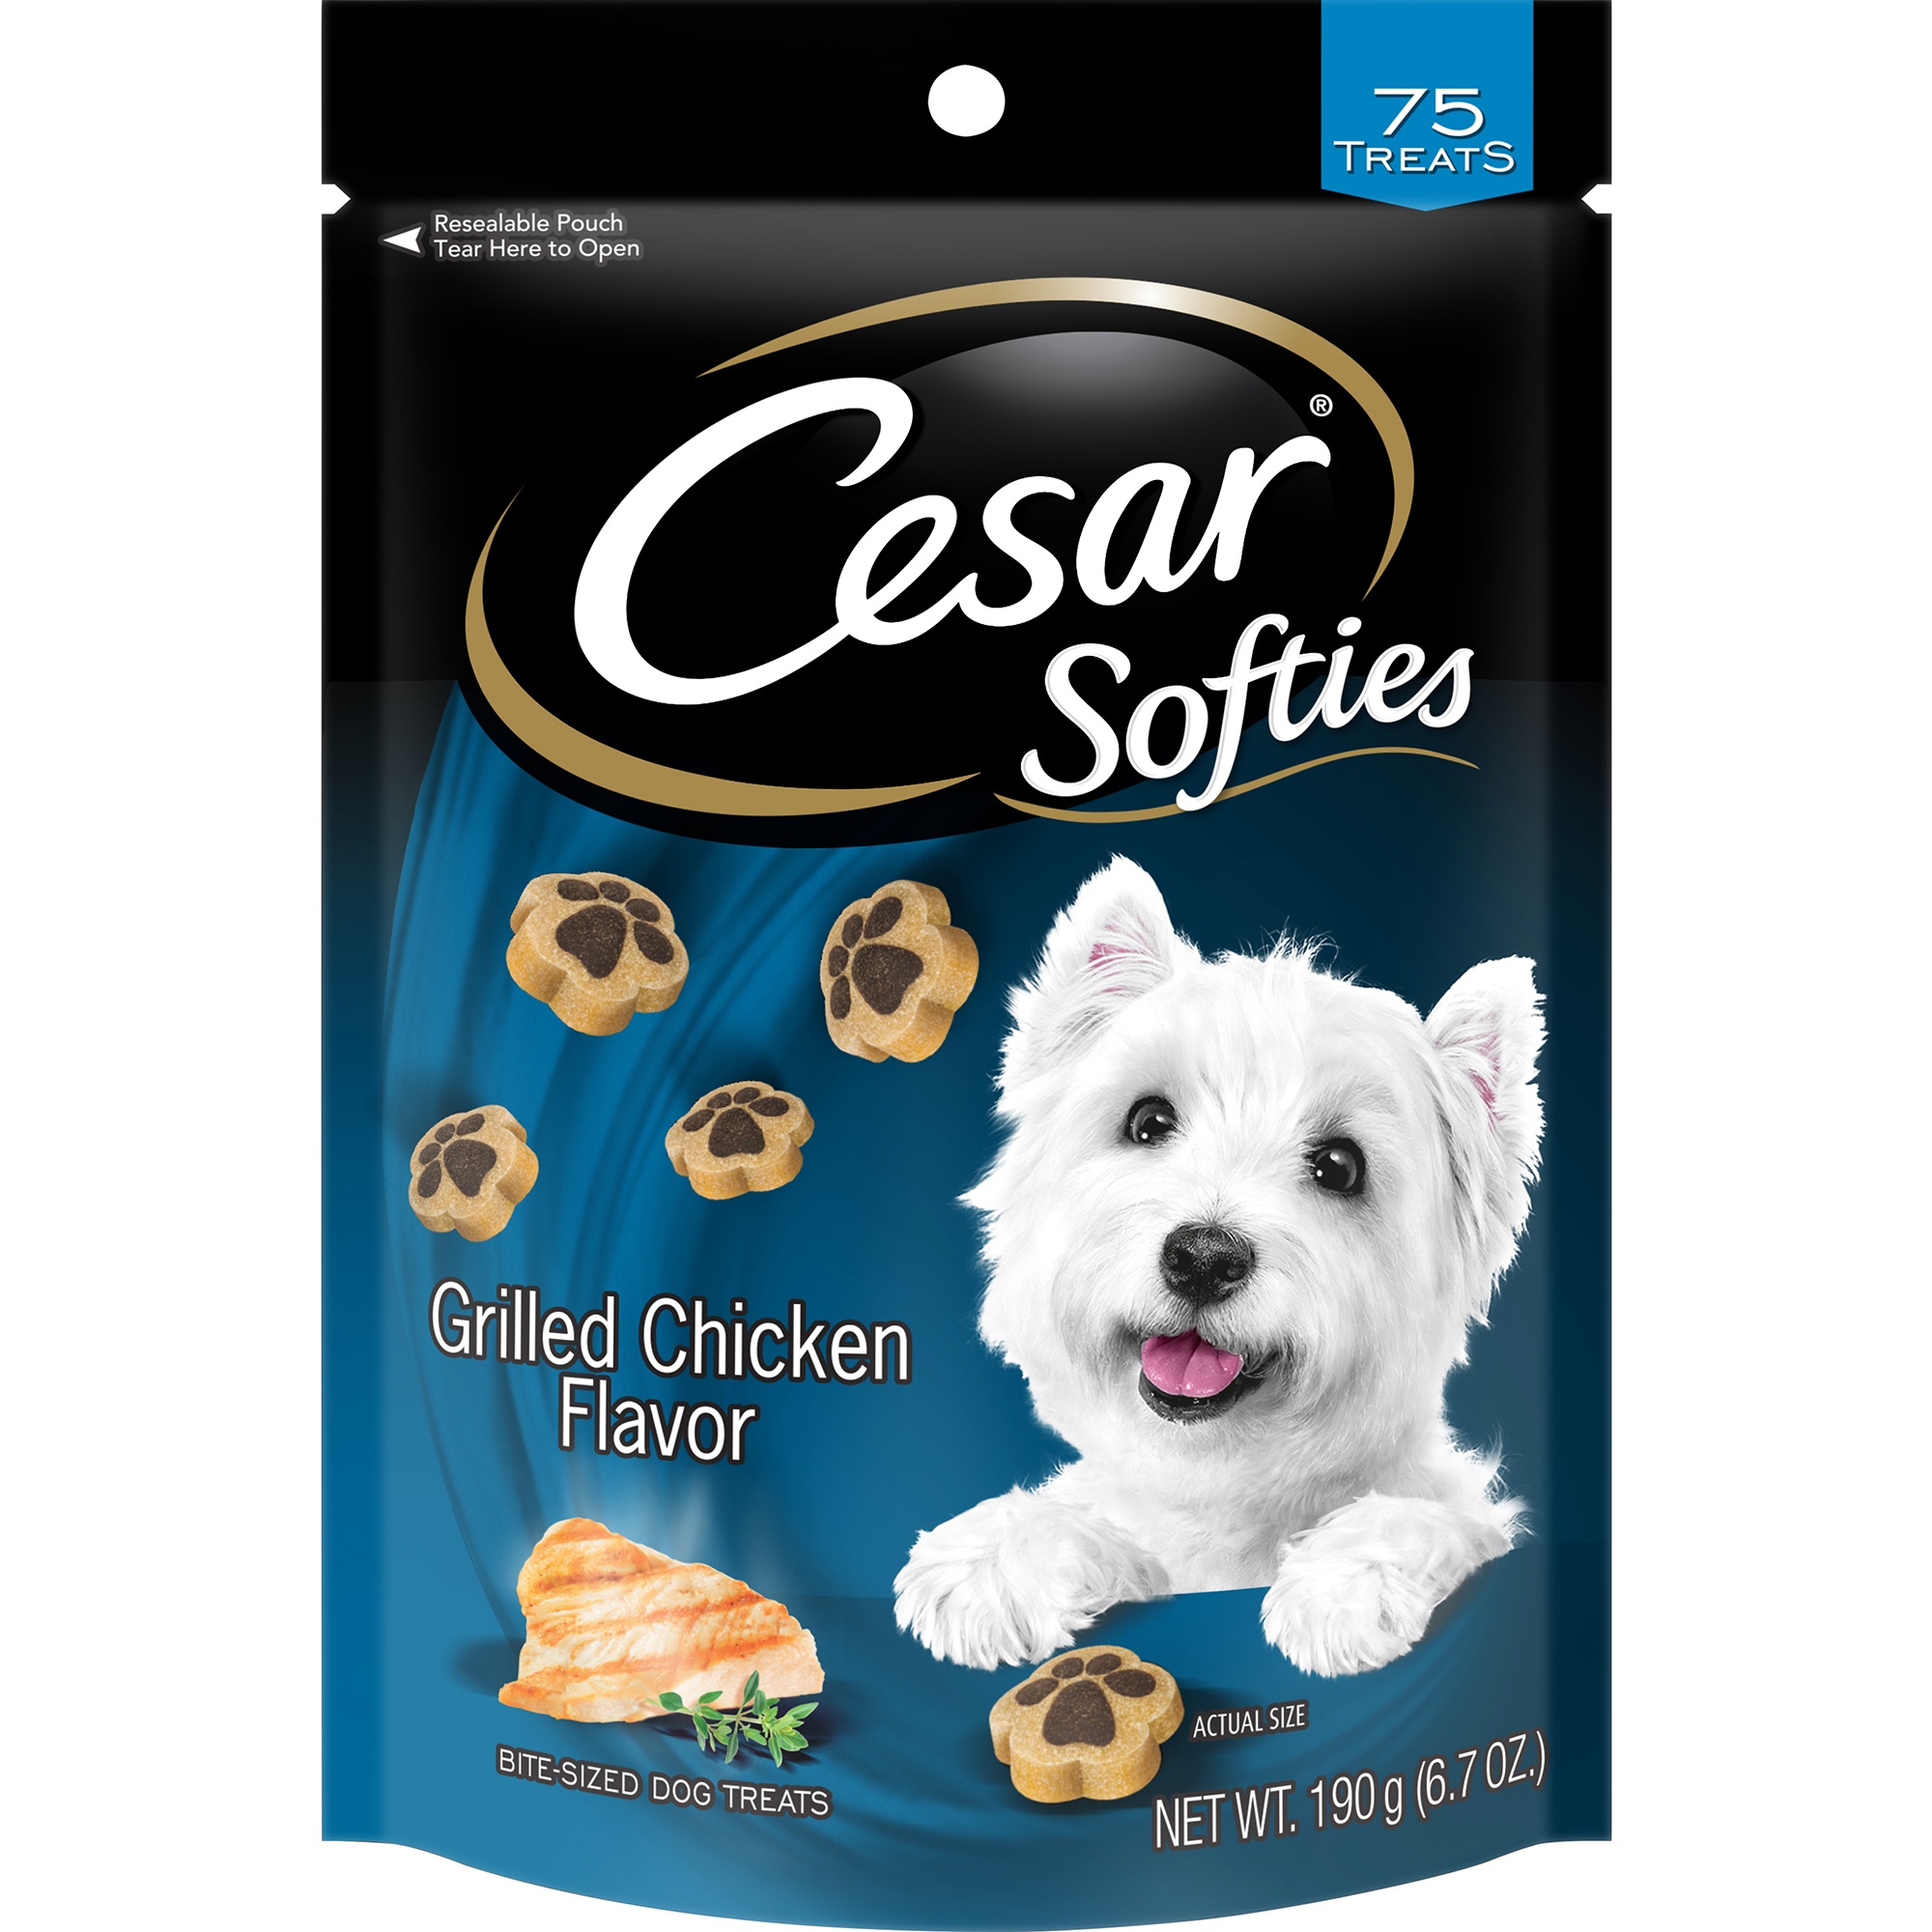 CESAR SOFTIES Grilled Chicken Flavor Dog Treats 6.7 oz. 75 Treats by Mars Petcare